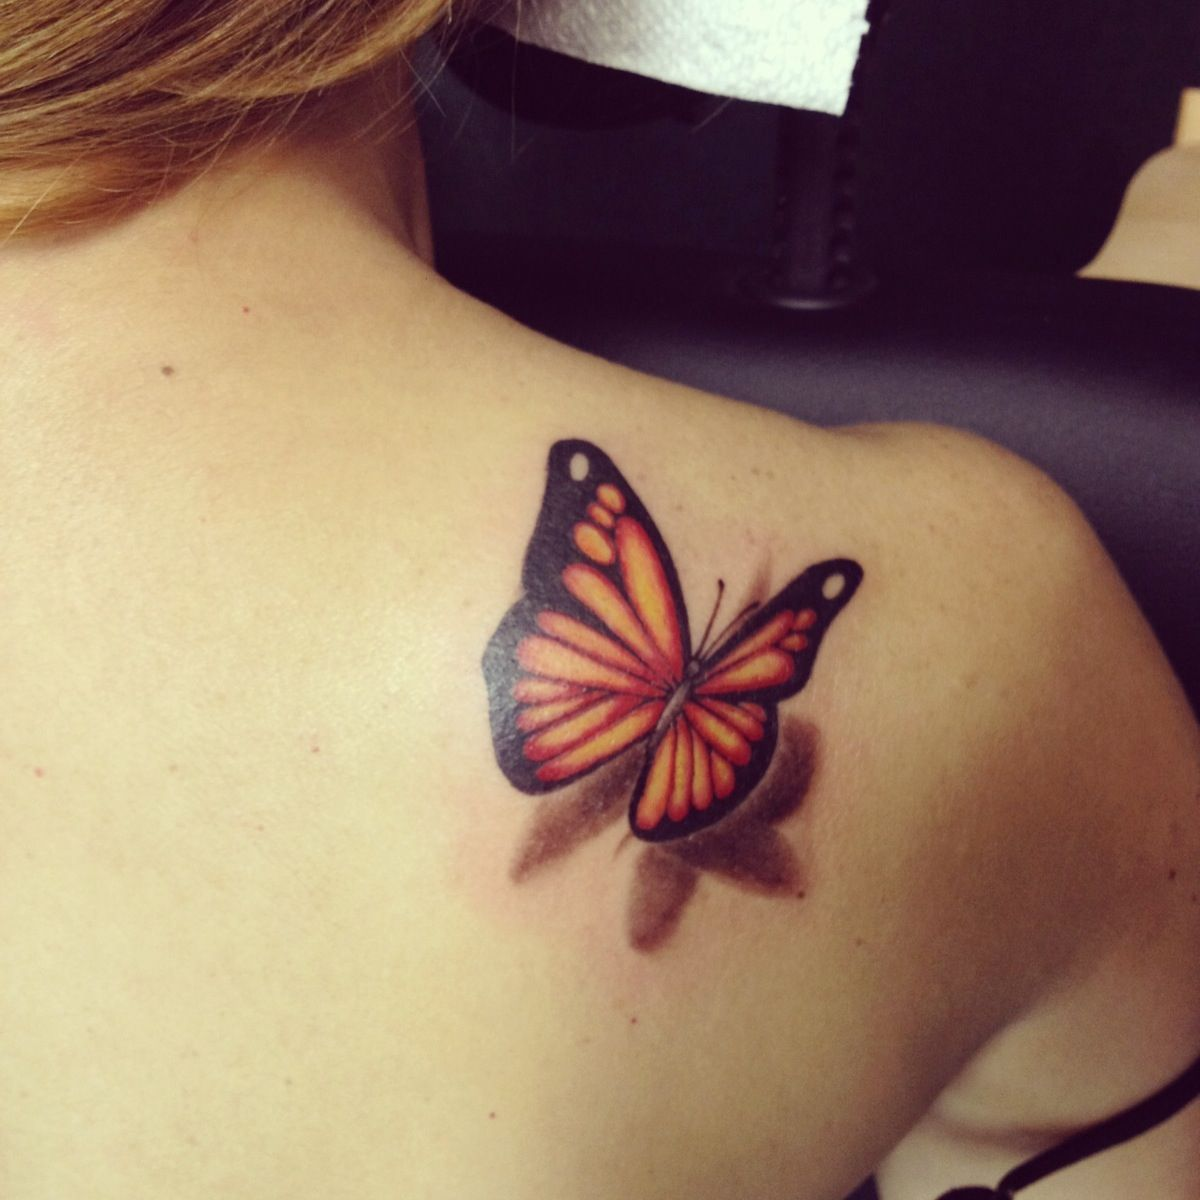 "The tattoo I want in memory of Kaylie.. With a colorful butterfly instead & with her name on the butterfly. Also with the words ""I will carry you with me"" around it."